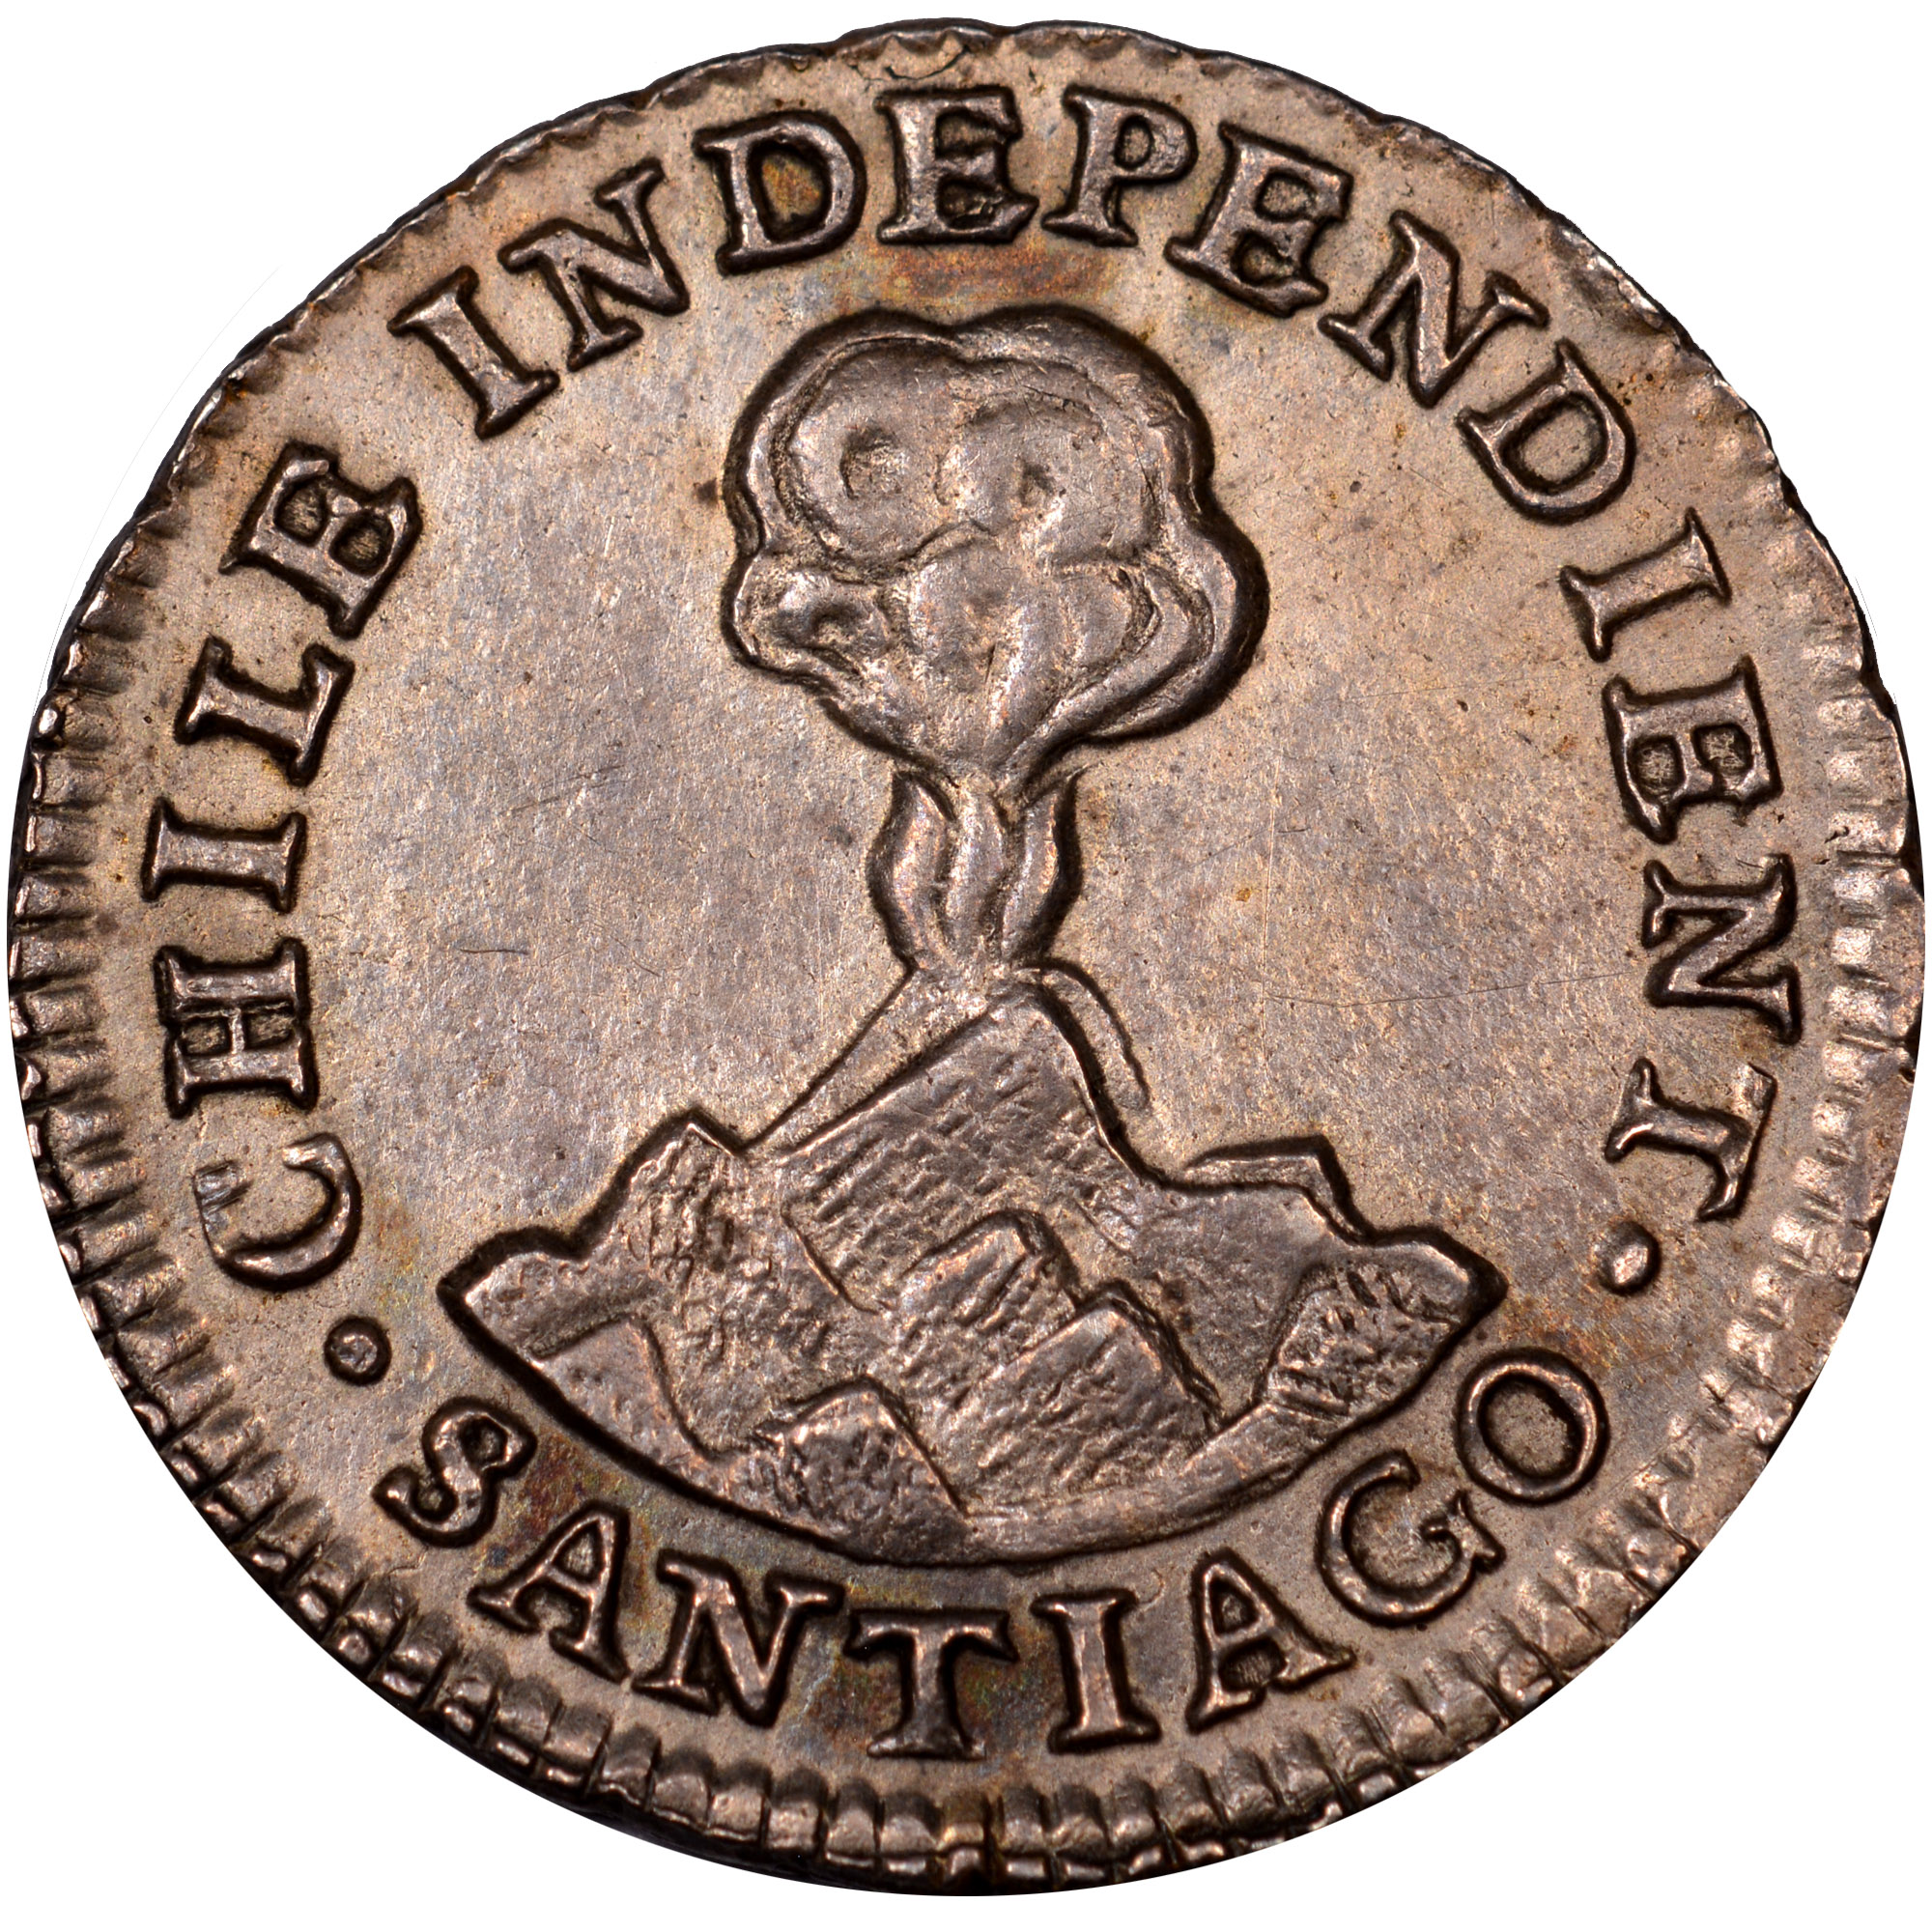 1833-1834/3 Chile 1/2 Real obverse